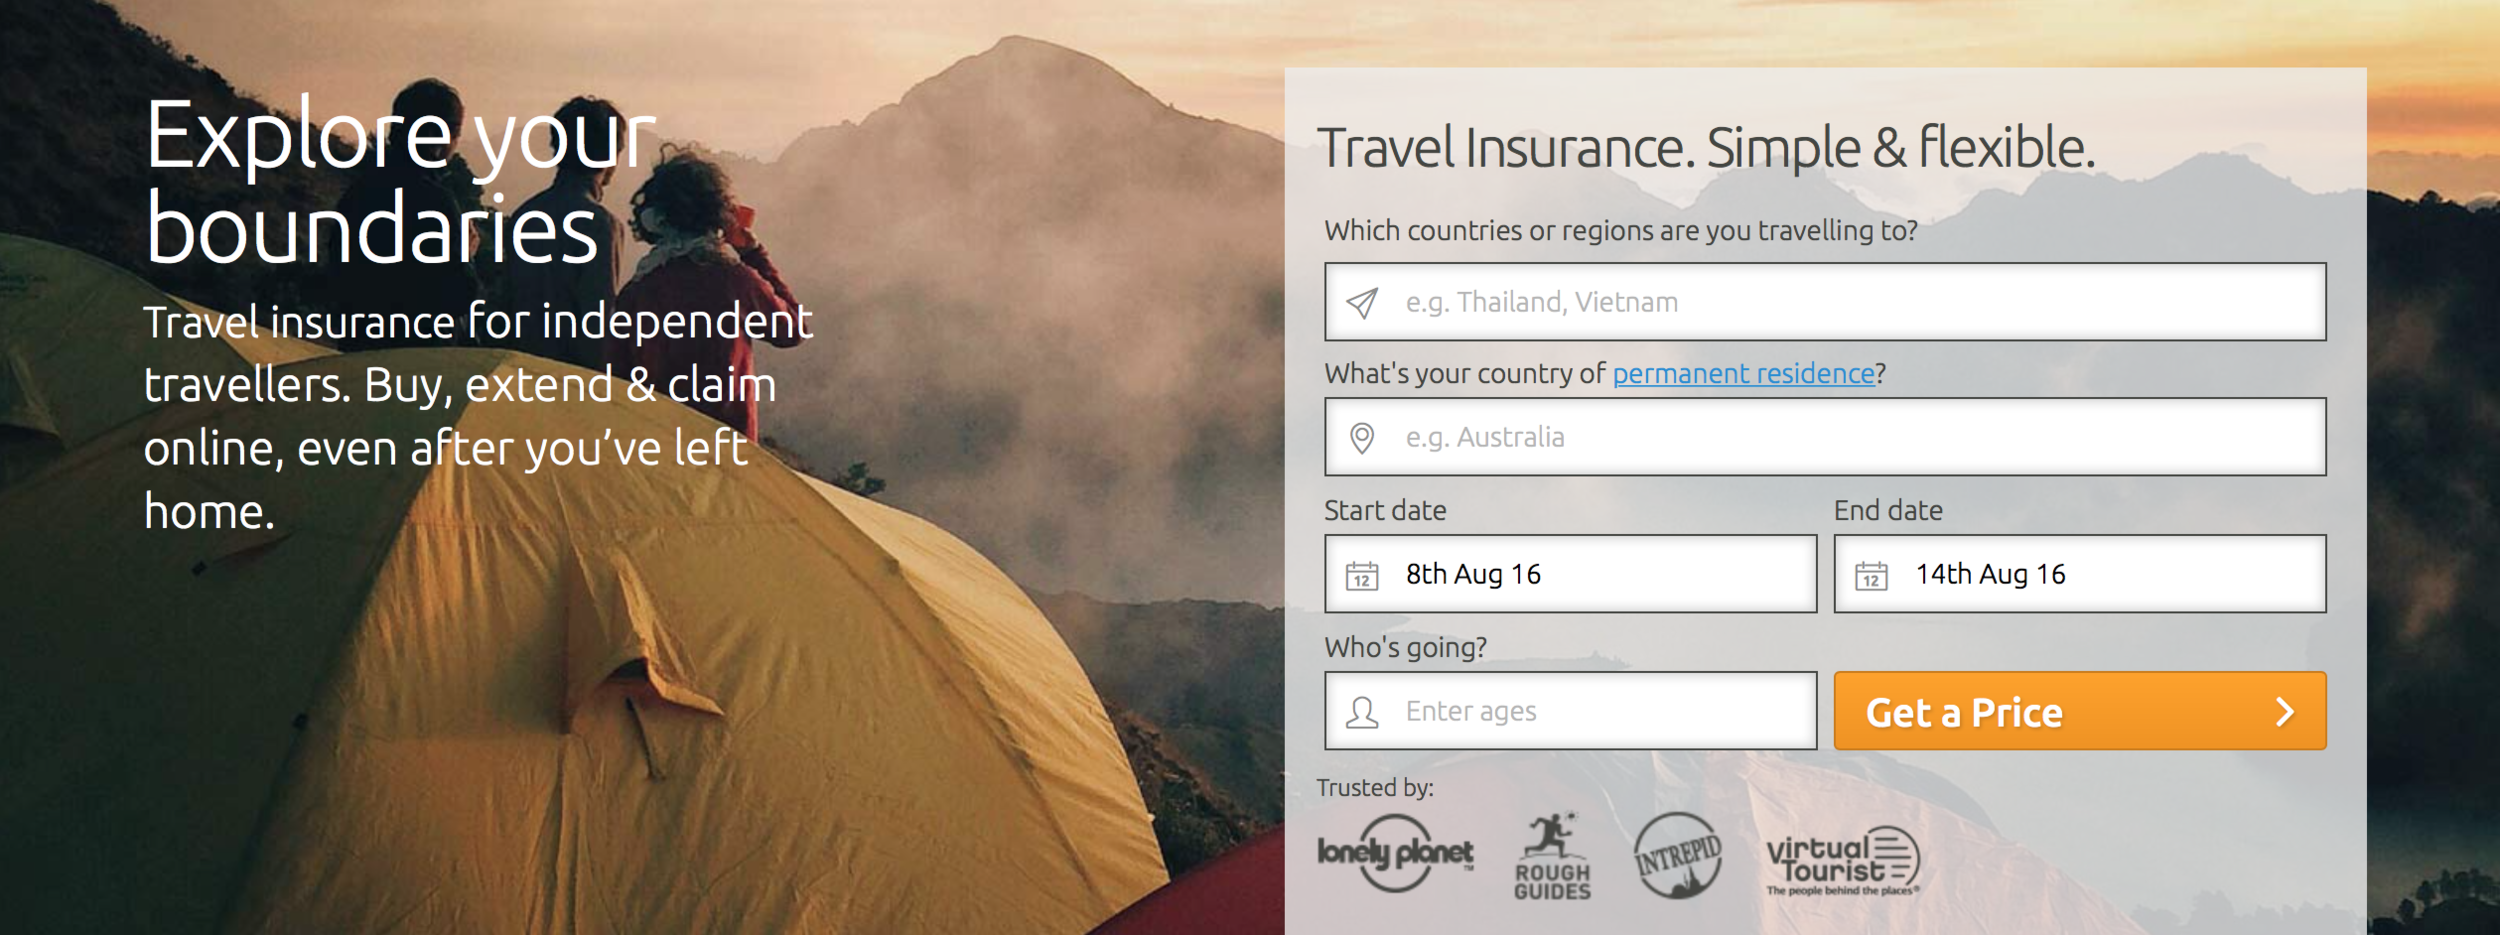 Travel insurance advice. Travel Safety tips. Travel emergency.